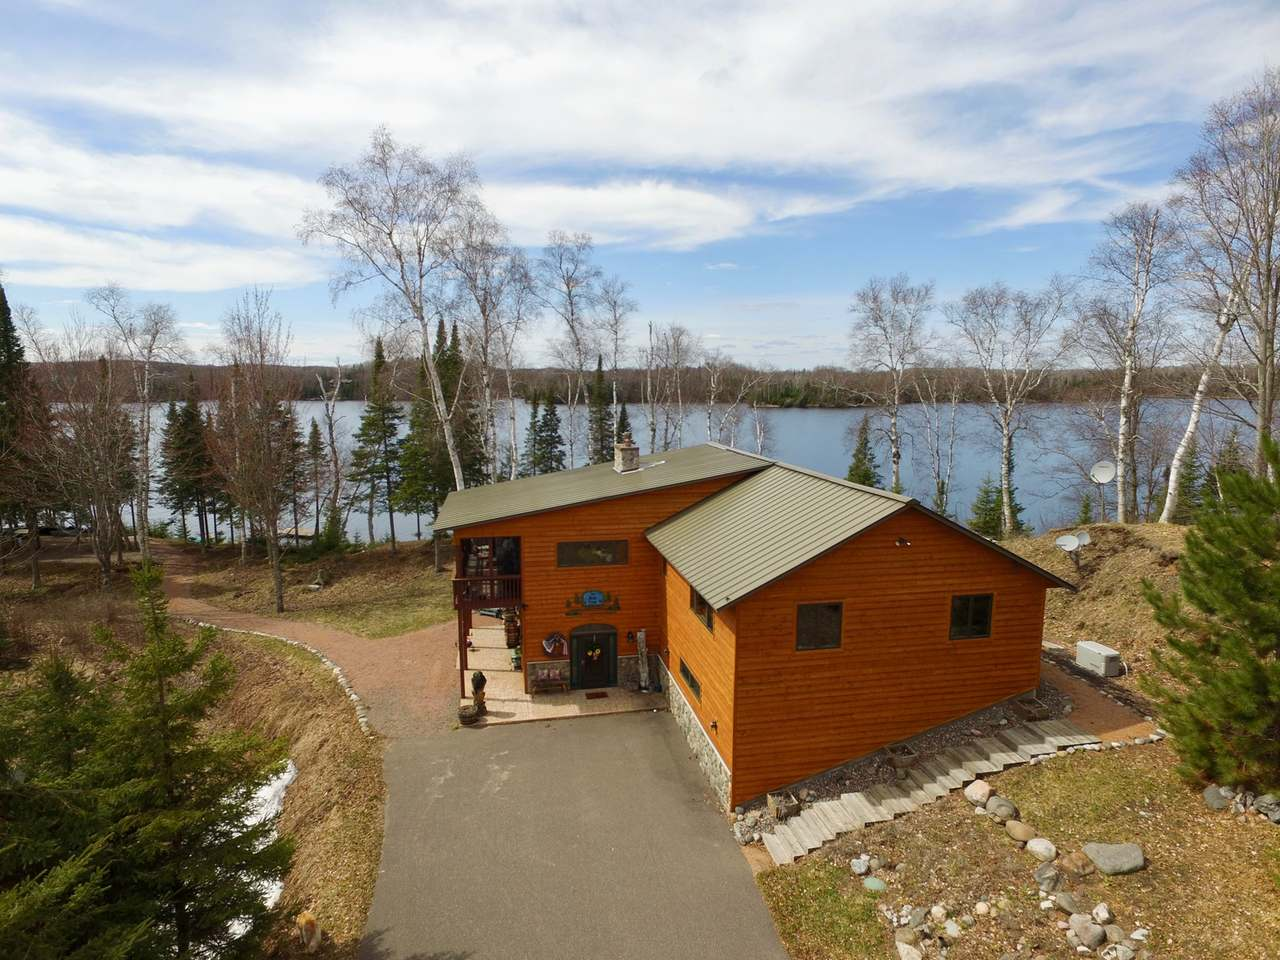 """Spectacular estate located on Twin Island Lake of the Frontier Lakes Preserve. Here you'll find a 4 BR, 3 BA, 3500 sq ft main home and 1300 sq ft guest home all surrounded by towering pines and privacy. The main home offers a spacious kitchen/living area with floor to ceiling lake views, multiple living areas, indoor sauna, and a FP on each floor. This property features 3.85 +/- acres and 303 ft of western facing water frtg , paved fire pit, and lots of outdoor entertaining space. The guest home has 2 separate units each with it's own kitchen, full BA, and lakeside deck. In add, the LL guest home has a gas FP and three built-in bunks to maximize space. The 47 x 29 pole building w/ concrete floor makes a great final addition to the property for storing all your toys. Located just 9 miles from downtown Boulder Junction with lots of shopping, bars, and restaurants. This is the perfect getaway for hosting family & friends for their true """"Up North"""" experience! *Seller Financing Available*"""